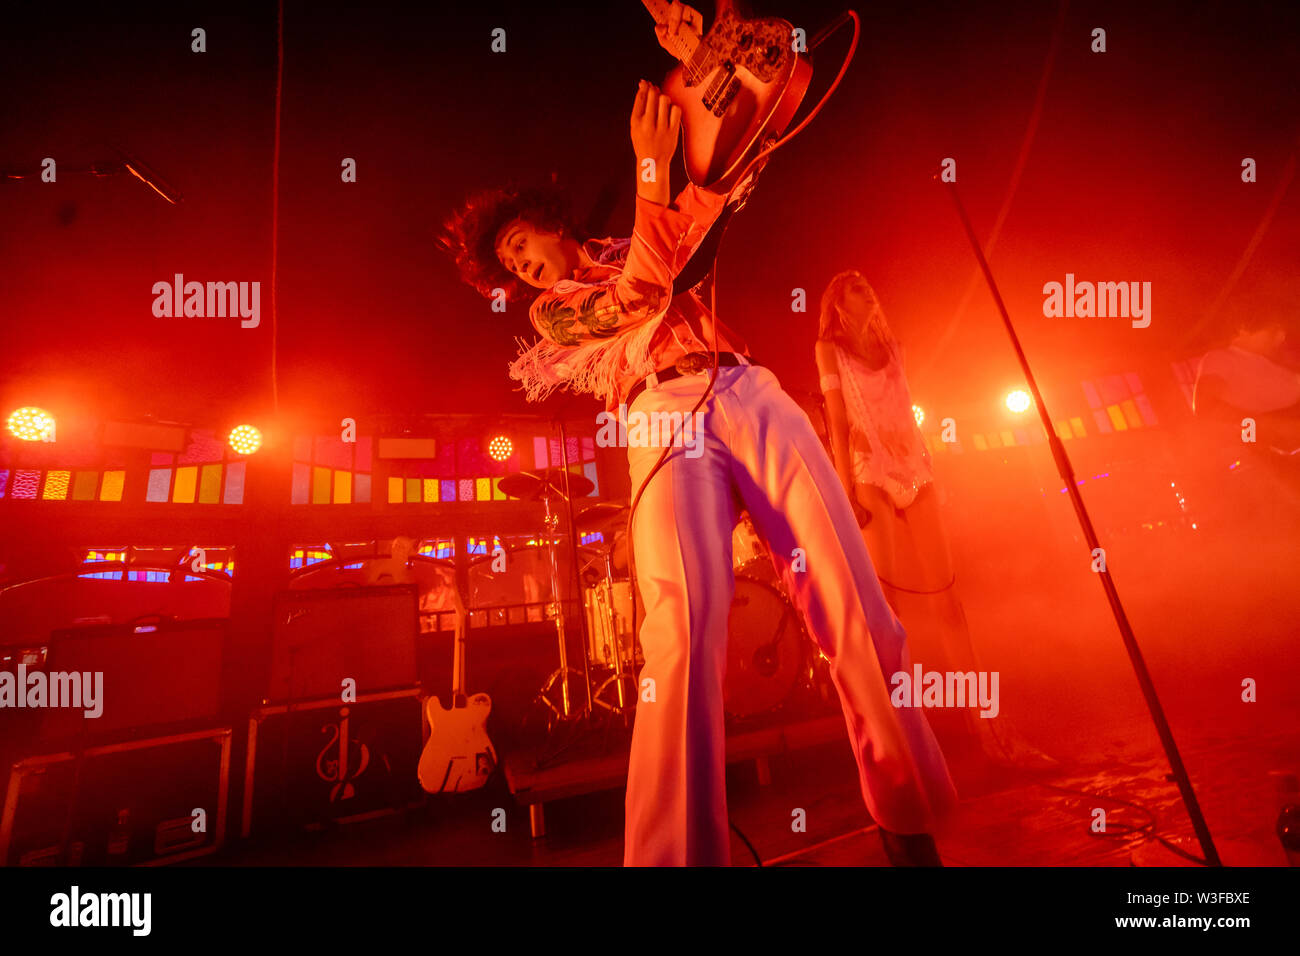 Bergen, Norway - June 15th, 2019. The American punk band Starcrawler performs a live concert during the Norwegian music festival Bergenfest 2019 in Bergen. Here guitarist Henri Cash is seen live on stage. (Photo credit: Gonzales Photo - Jarle H. Moe). - Stock Image